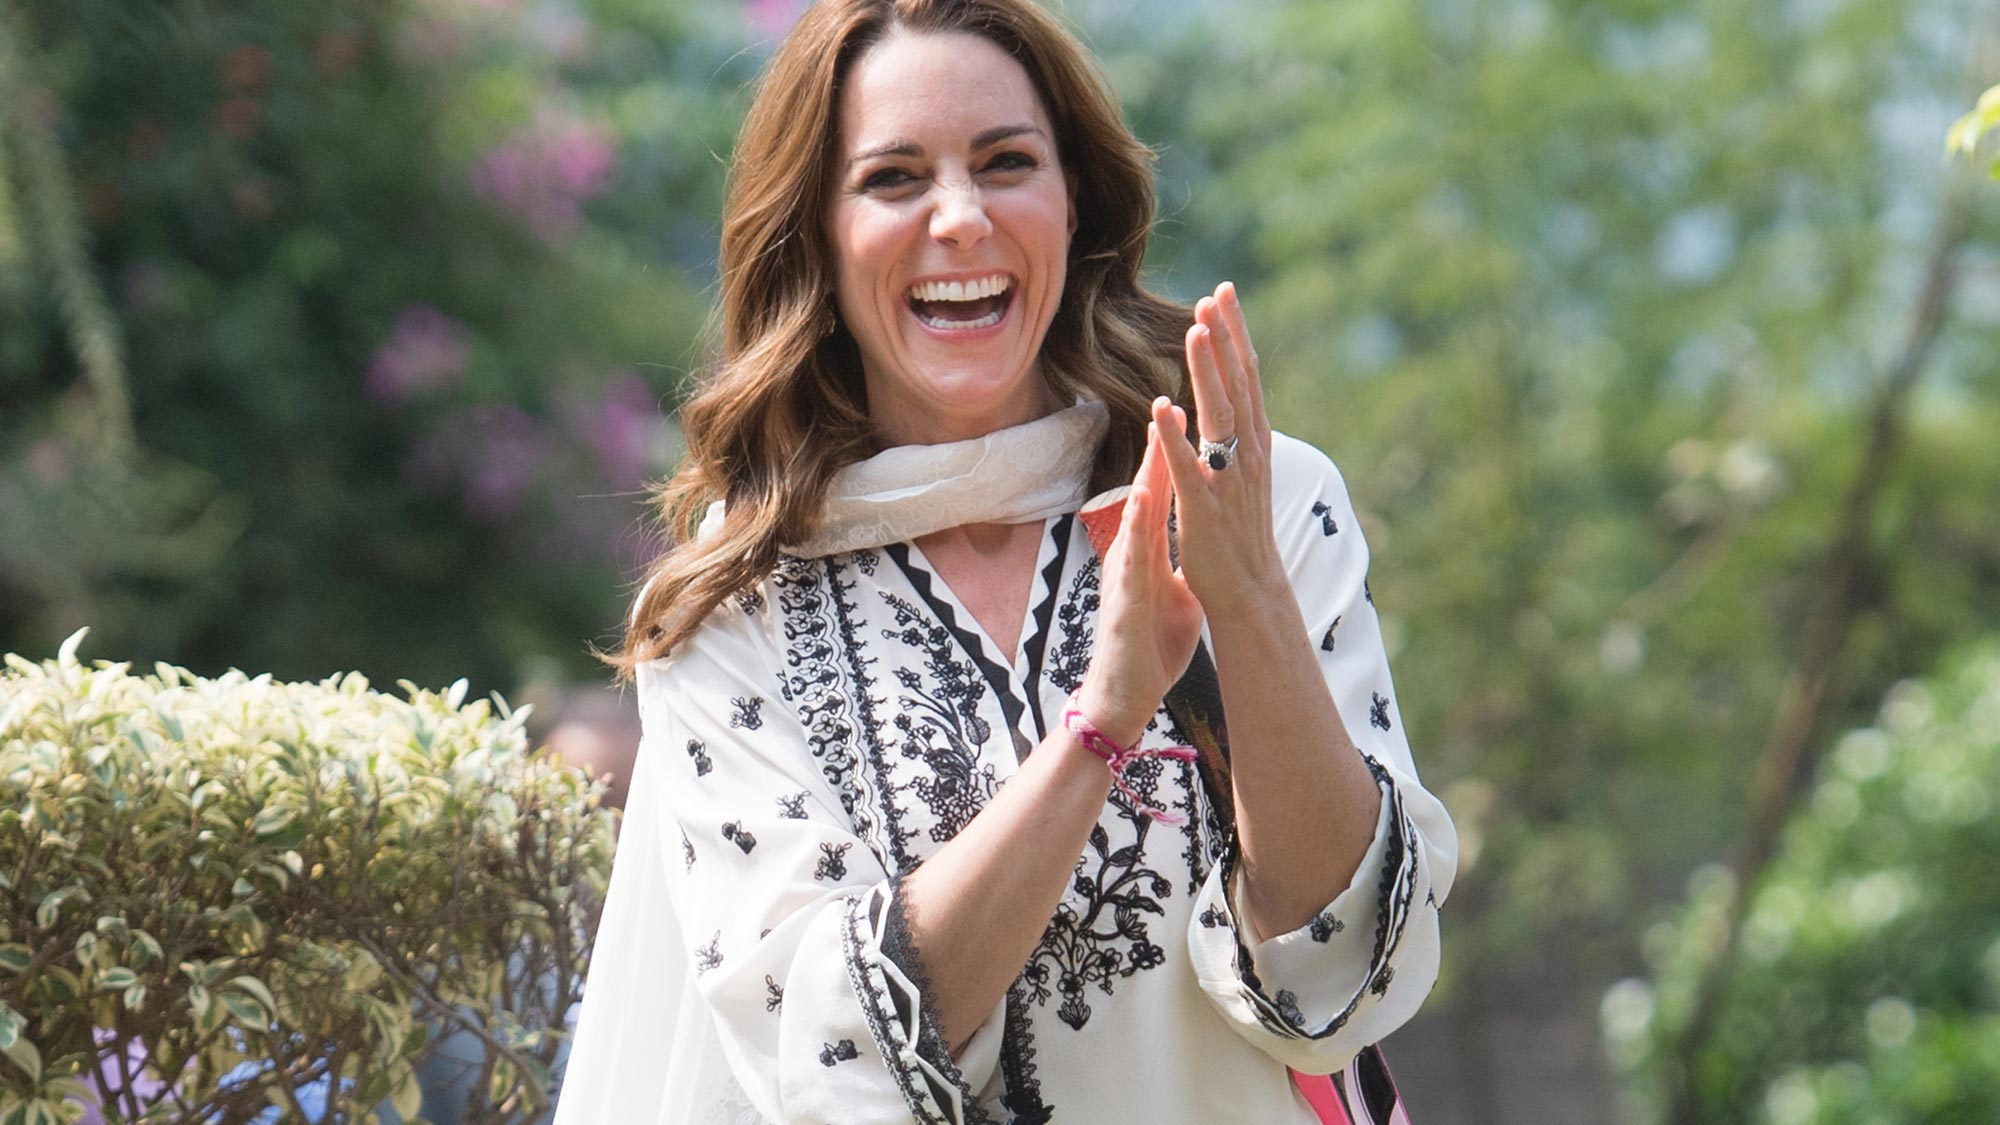 Kate Middleton secretly wore this Ghost dress on tour